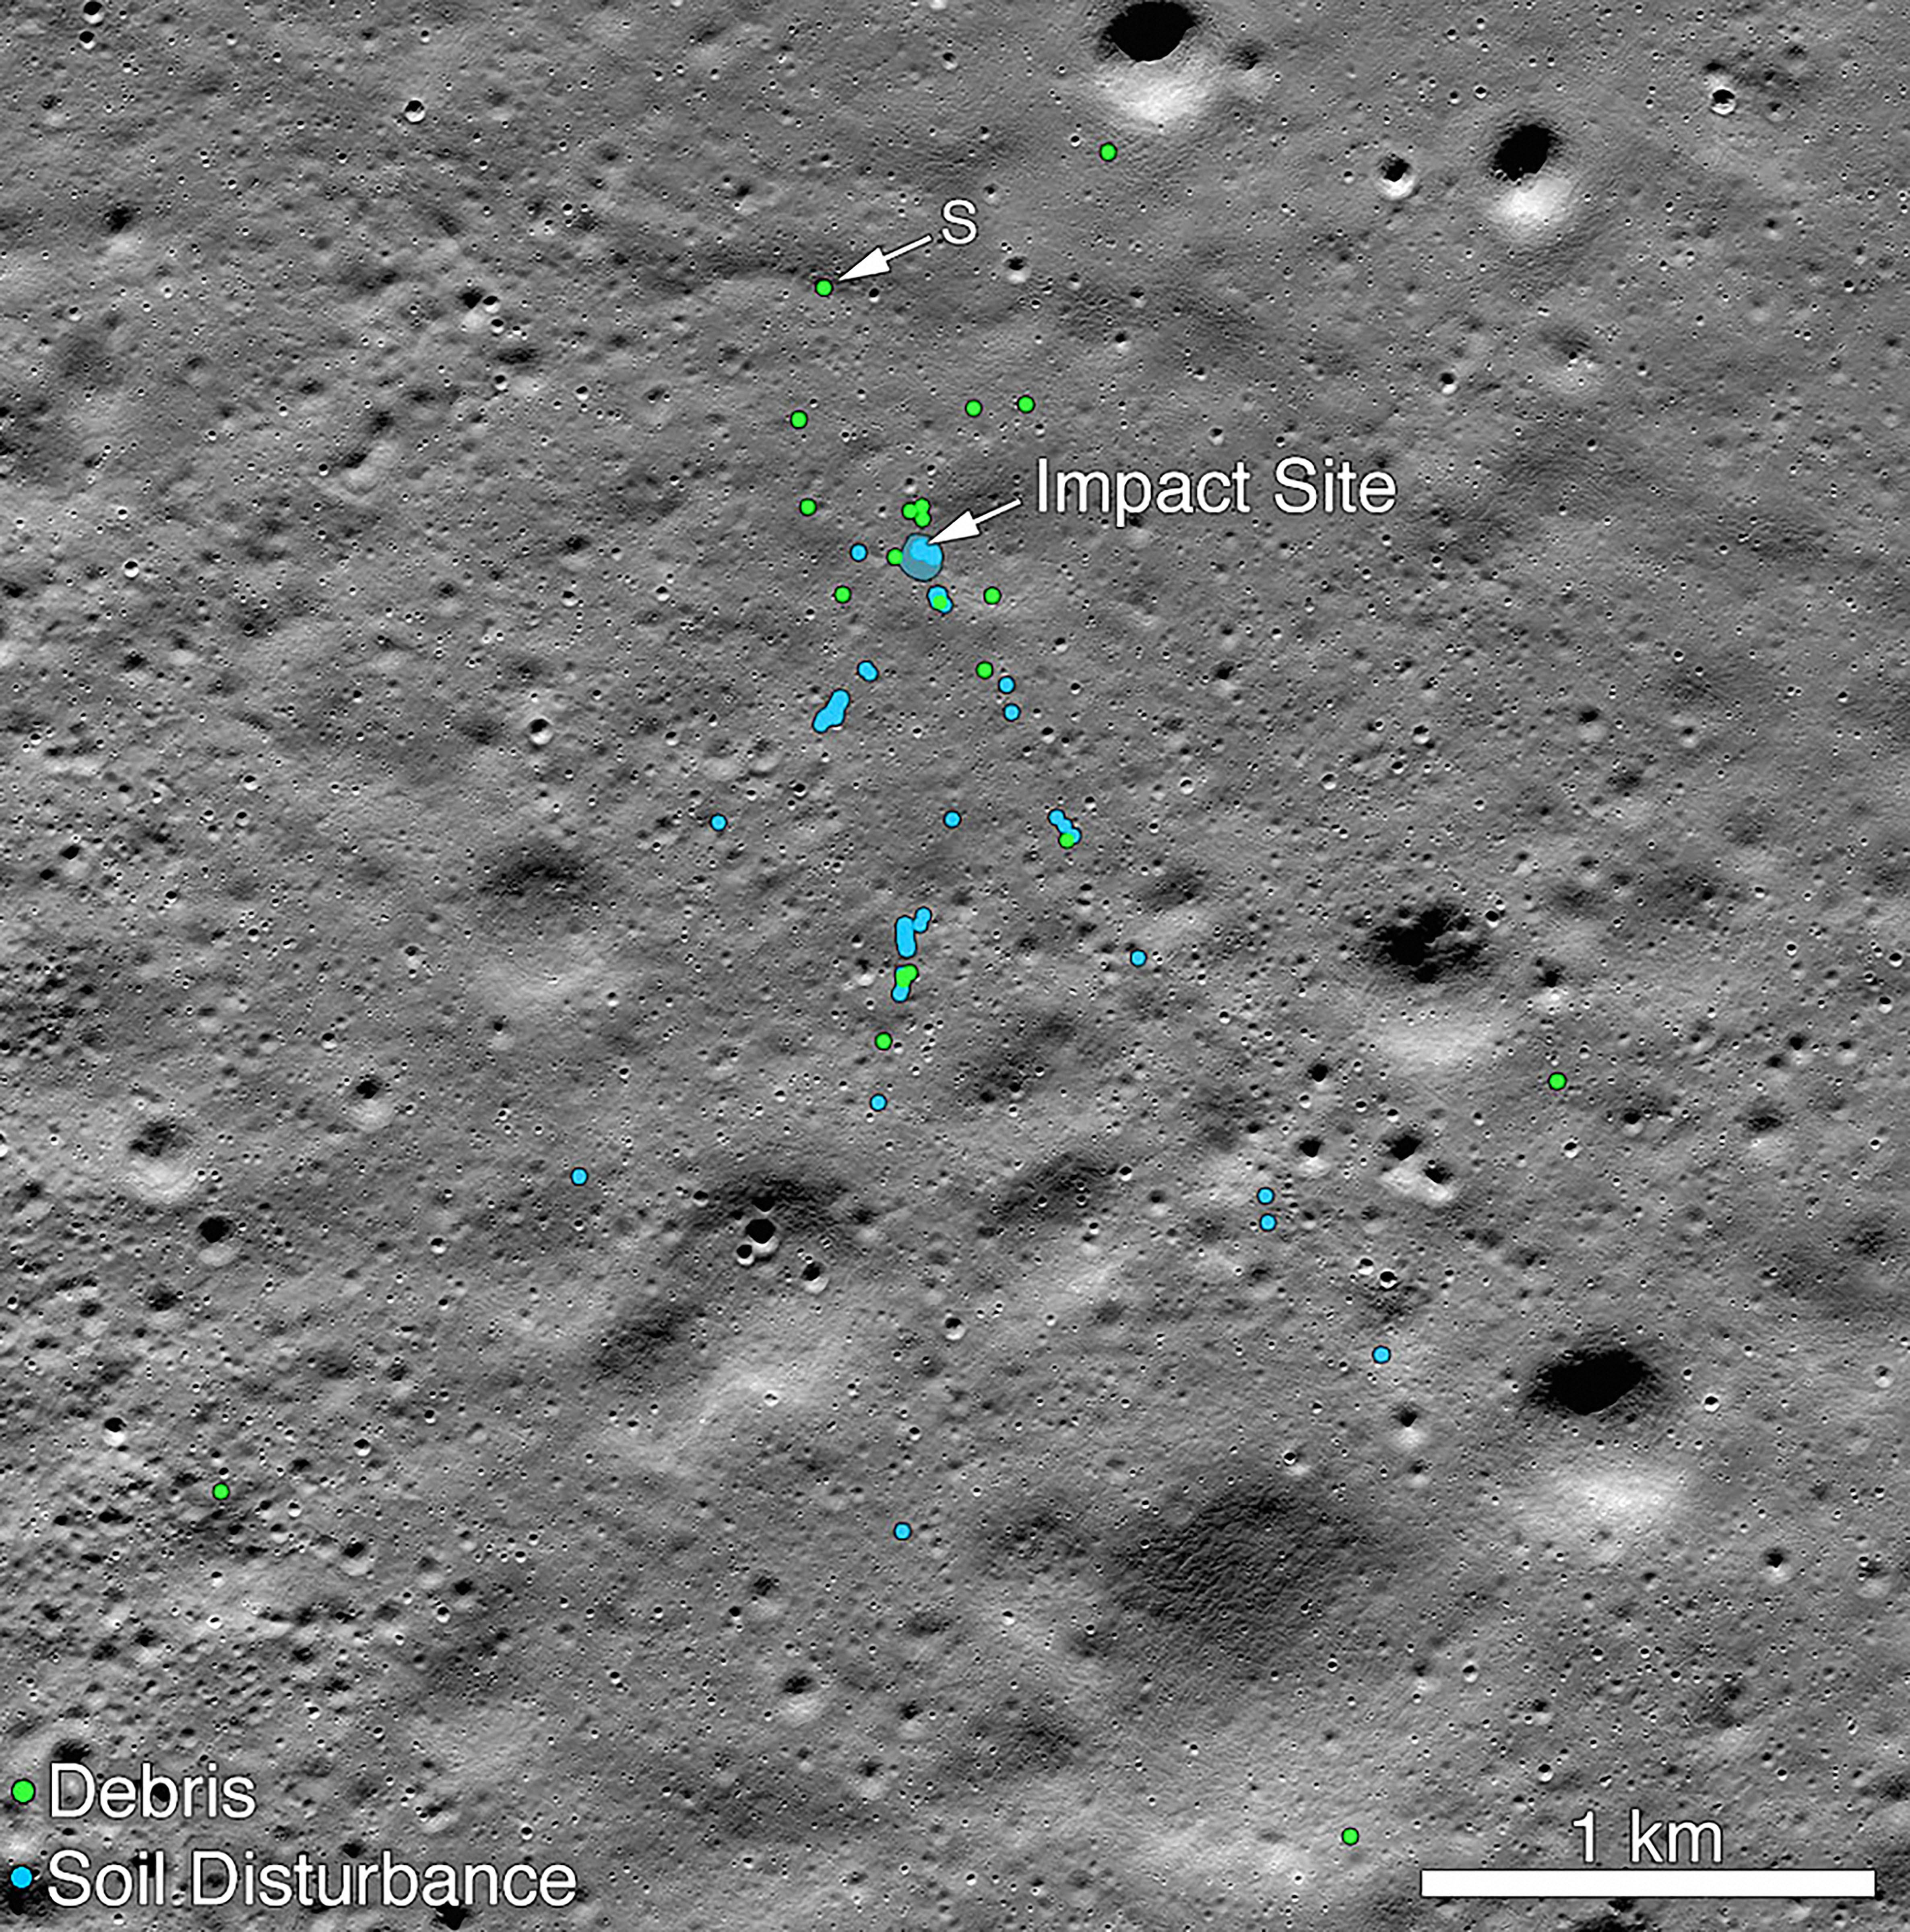 An undated photo released by Nasa on Tuesday, December 3, 2019, a mosaic of the impact site of Chandrayaan 2 Vikram lander, found by Nasa's Lunar Reconnaissance Orbiter.